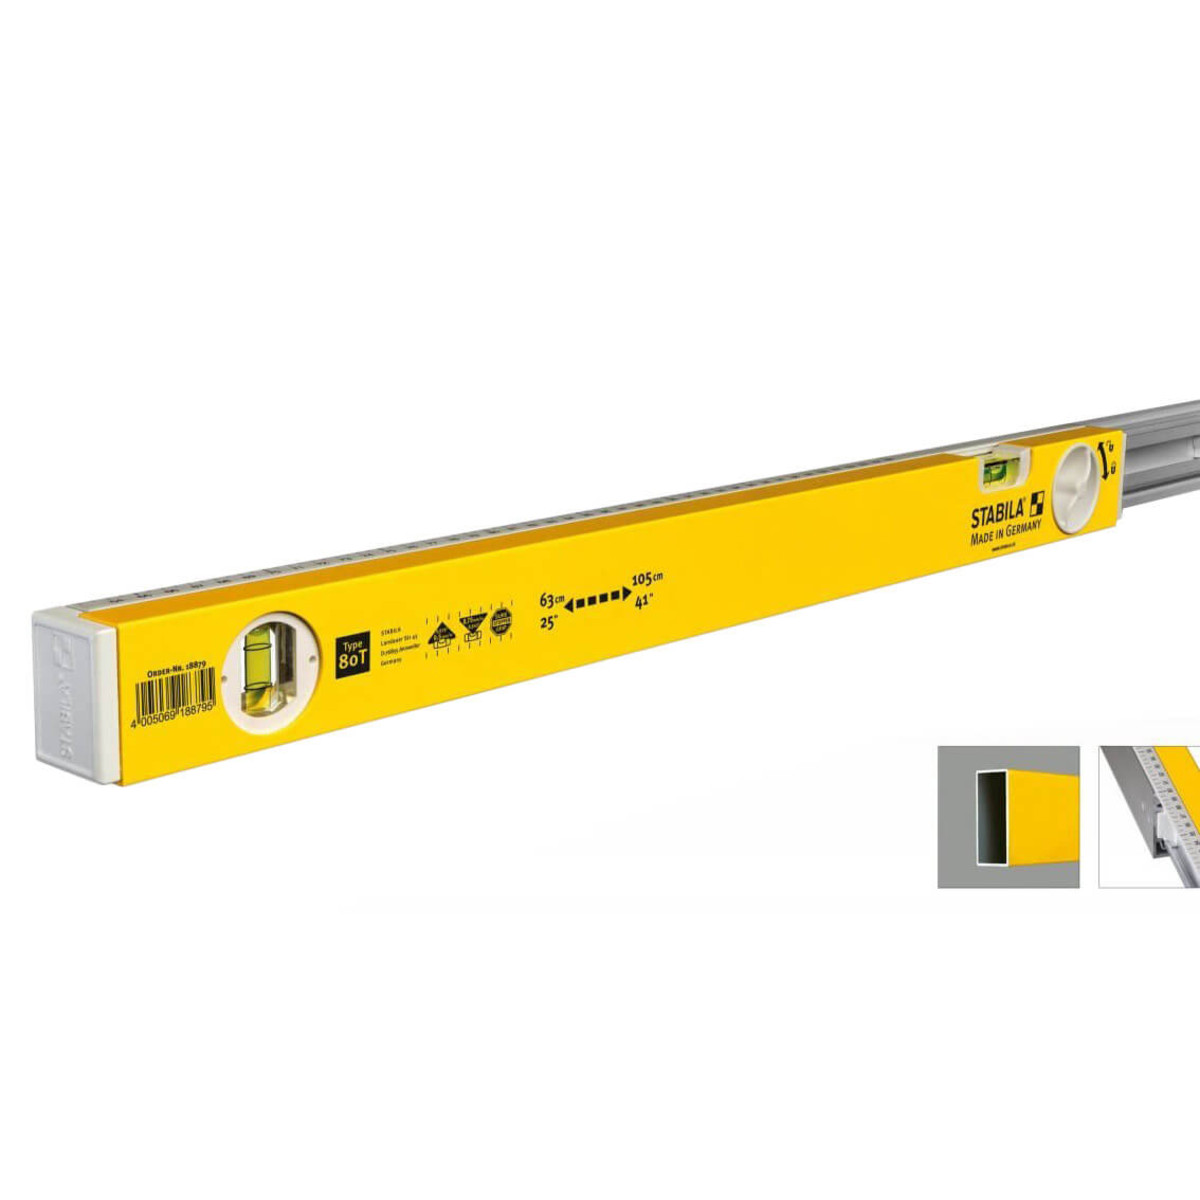 Stabila 80T Adjustable Level door